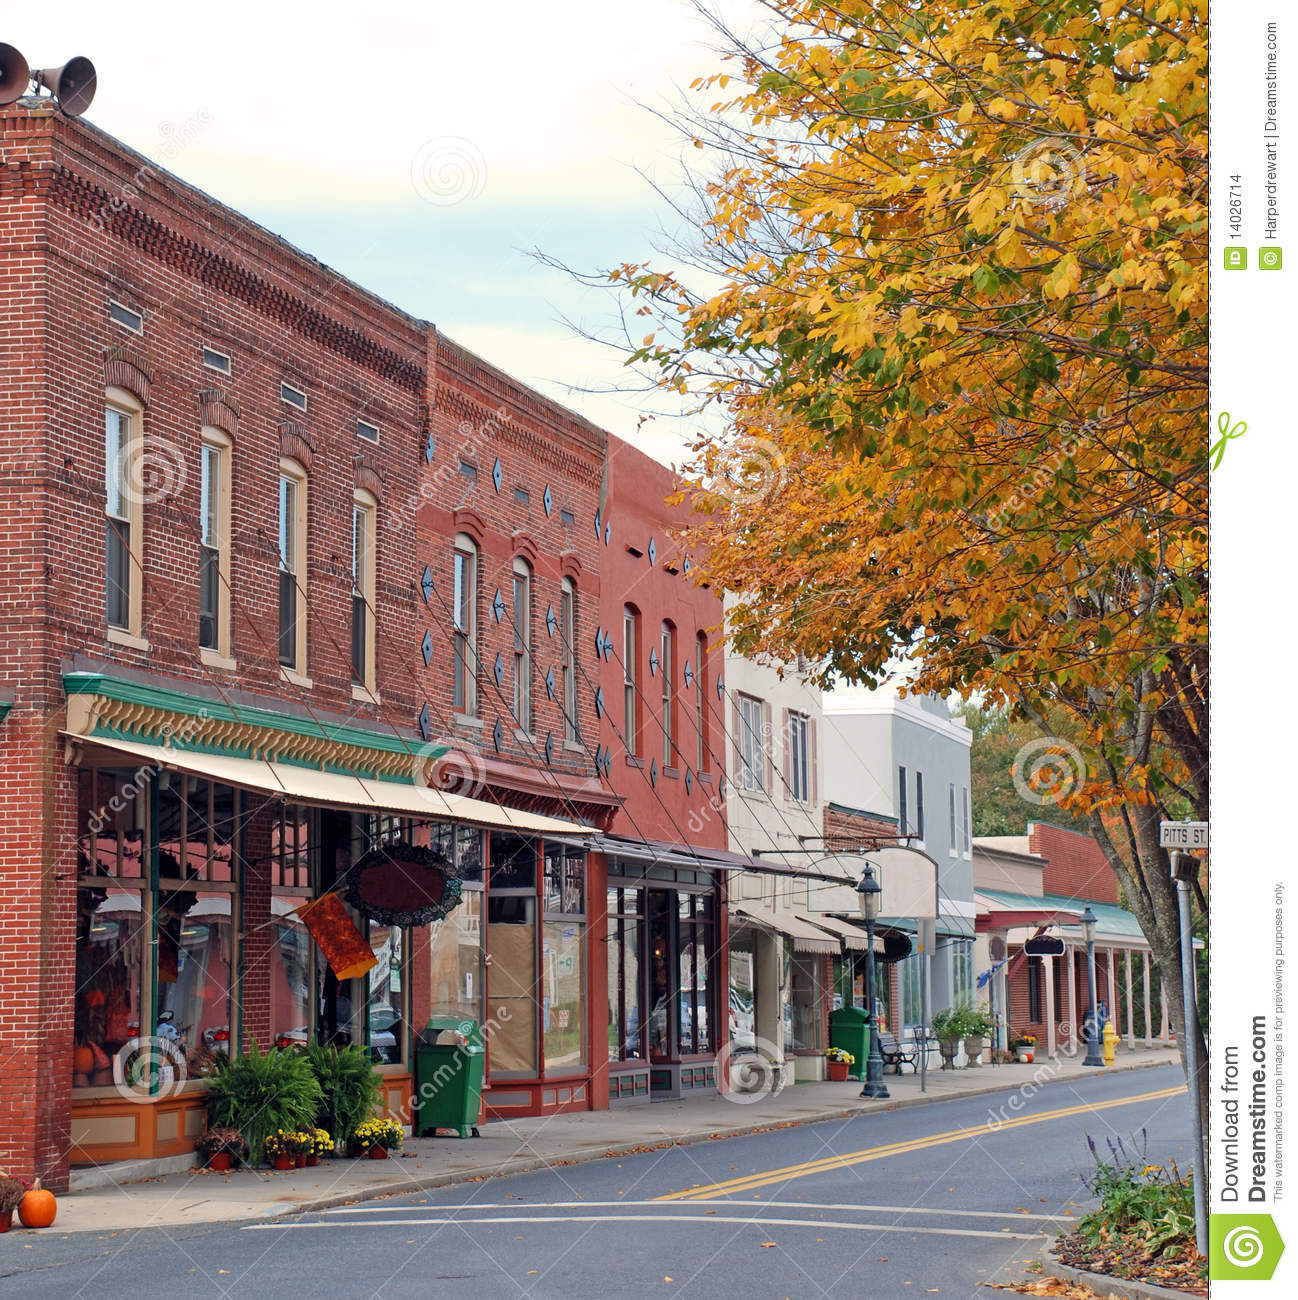 small town main street 1 stock images